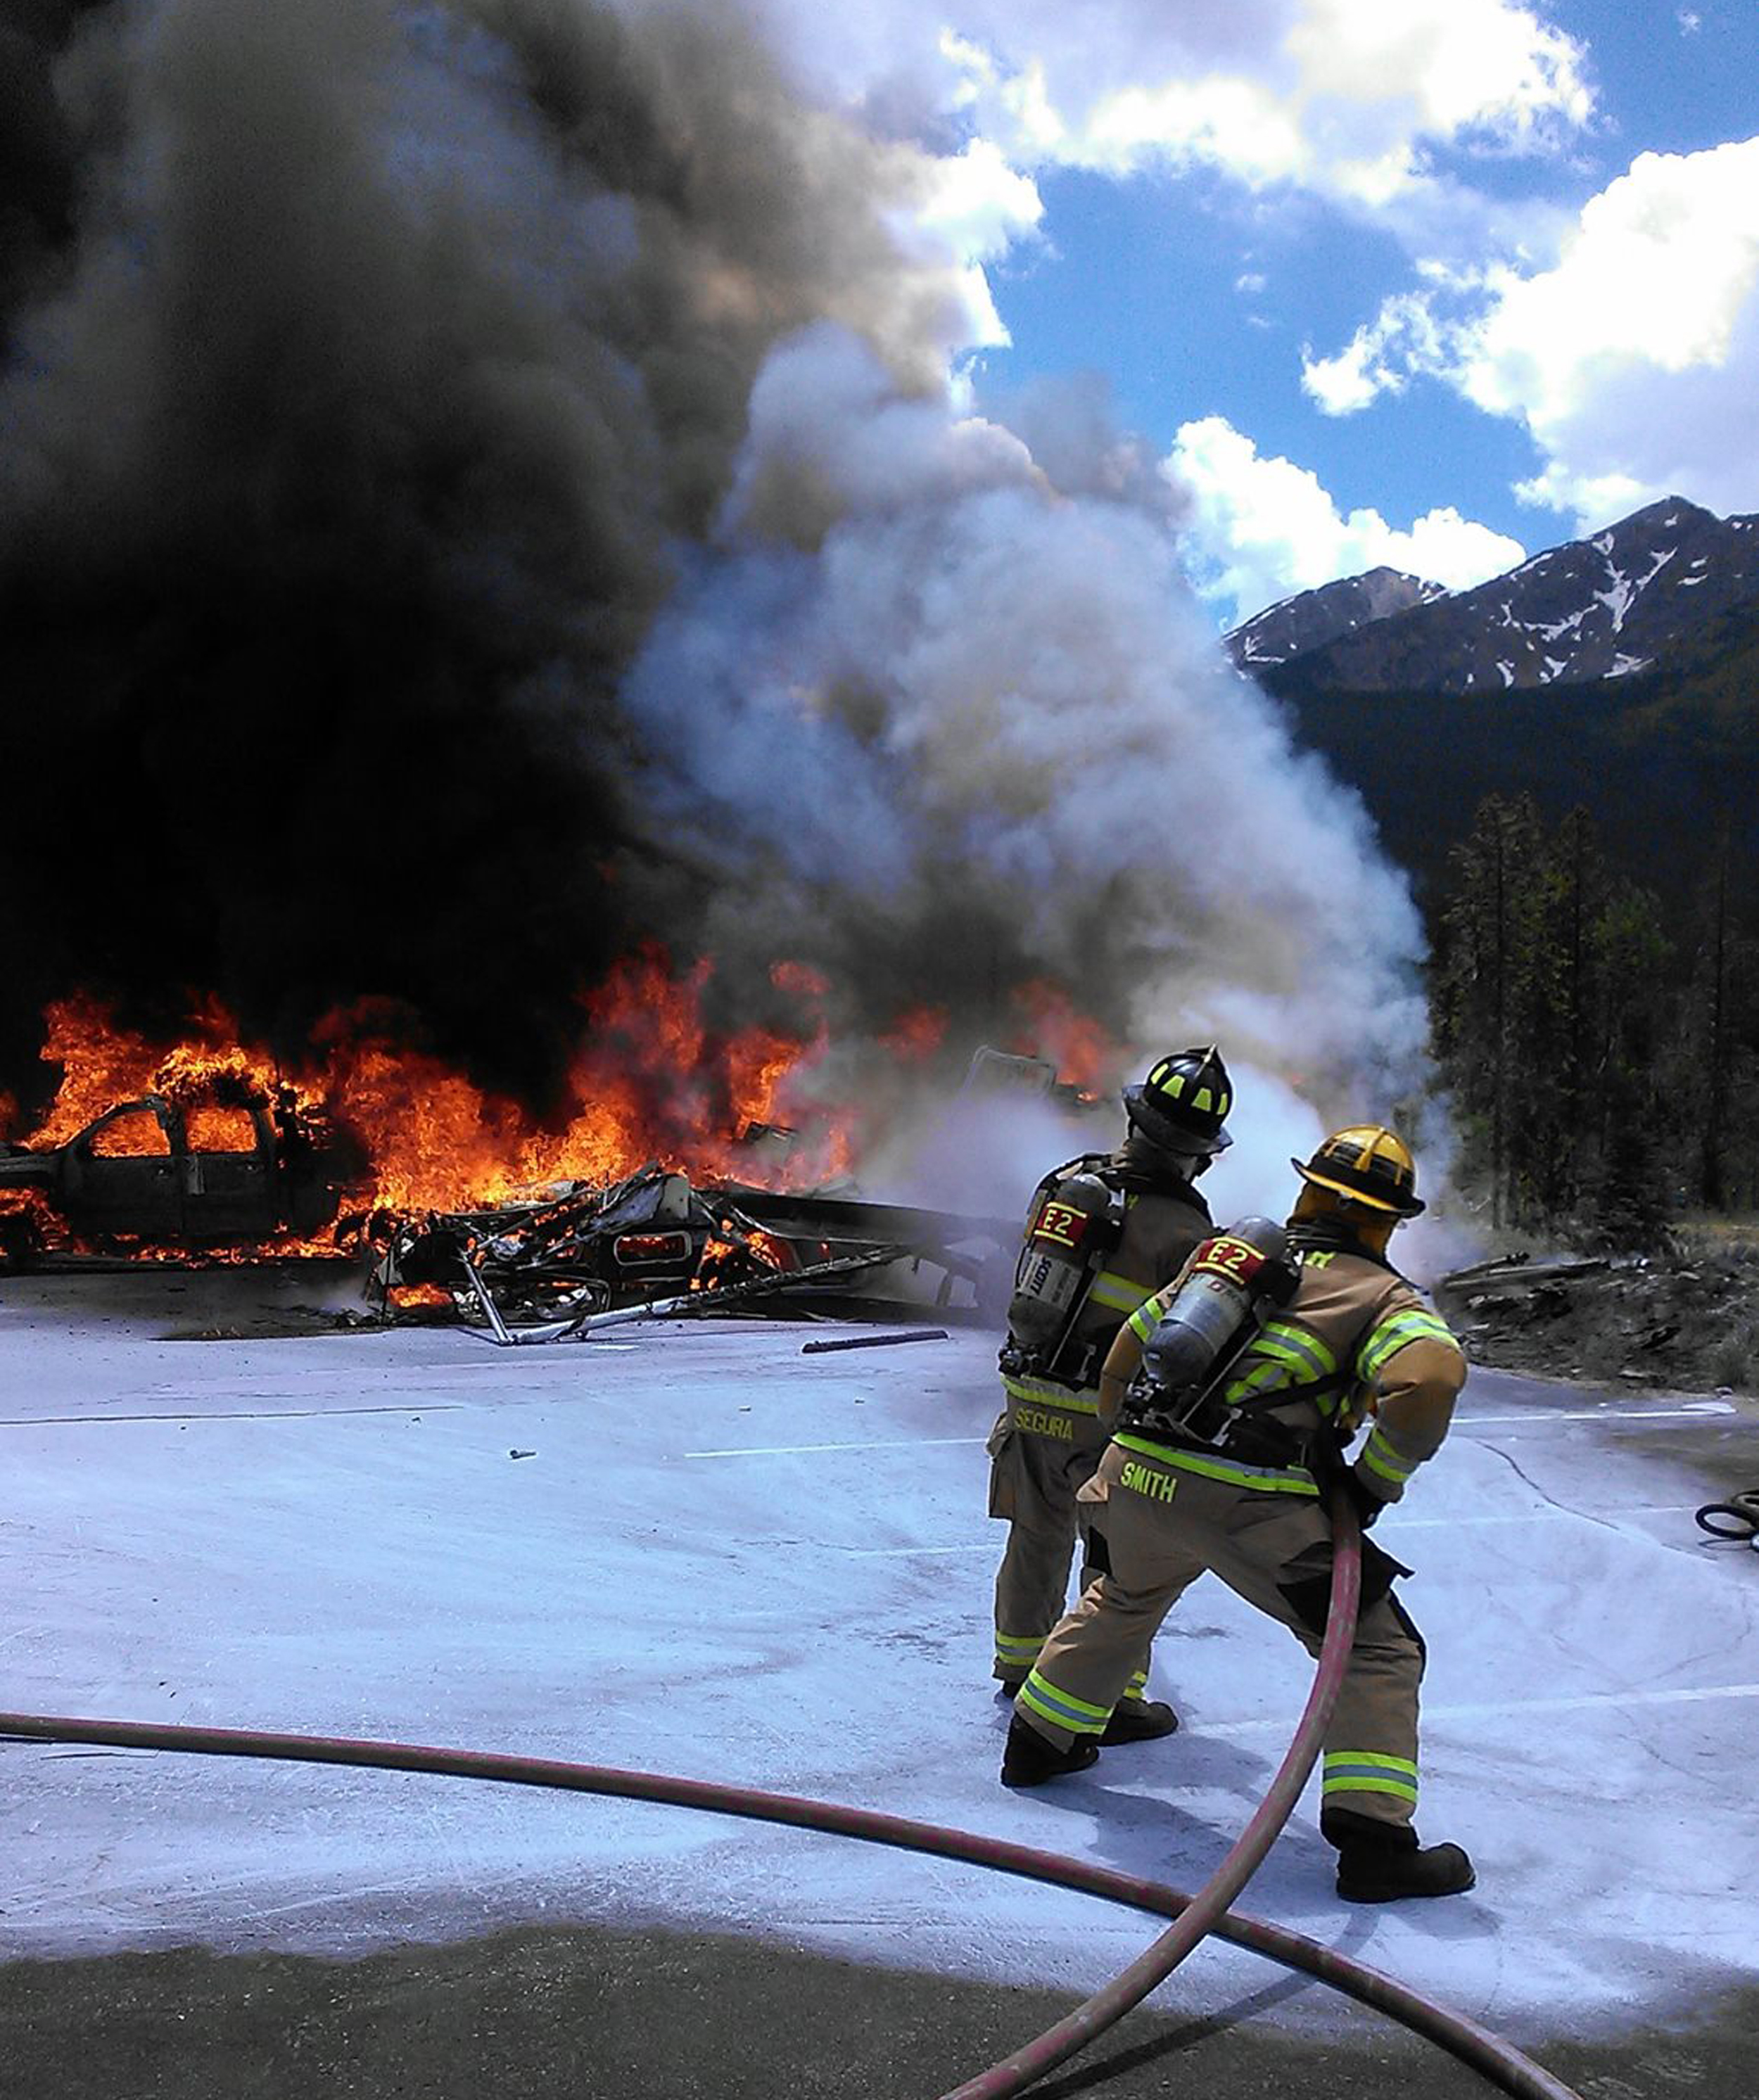 Pilot Dies After Medical Helicopter Crashes in Colorado